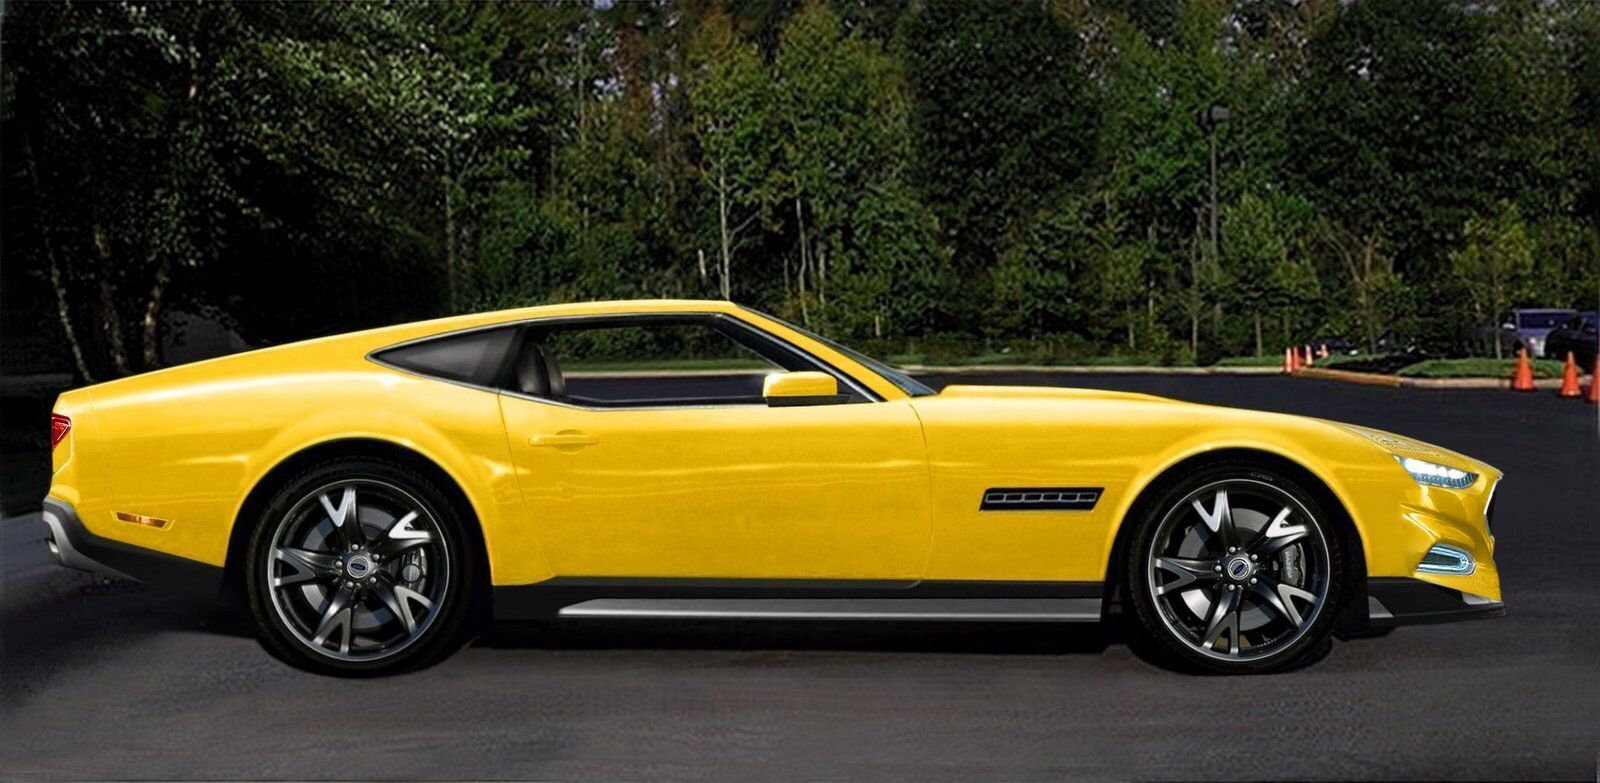 2015 Ford Pantera Ford Pinterest Cars Ford I Classic Cars